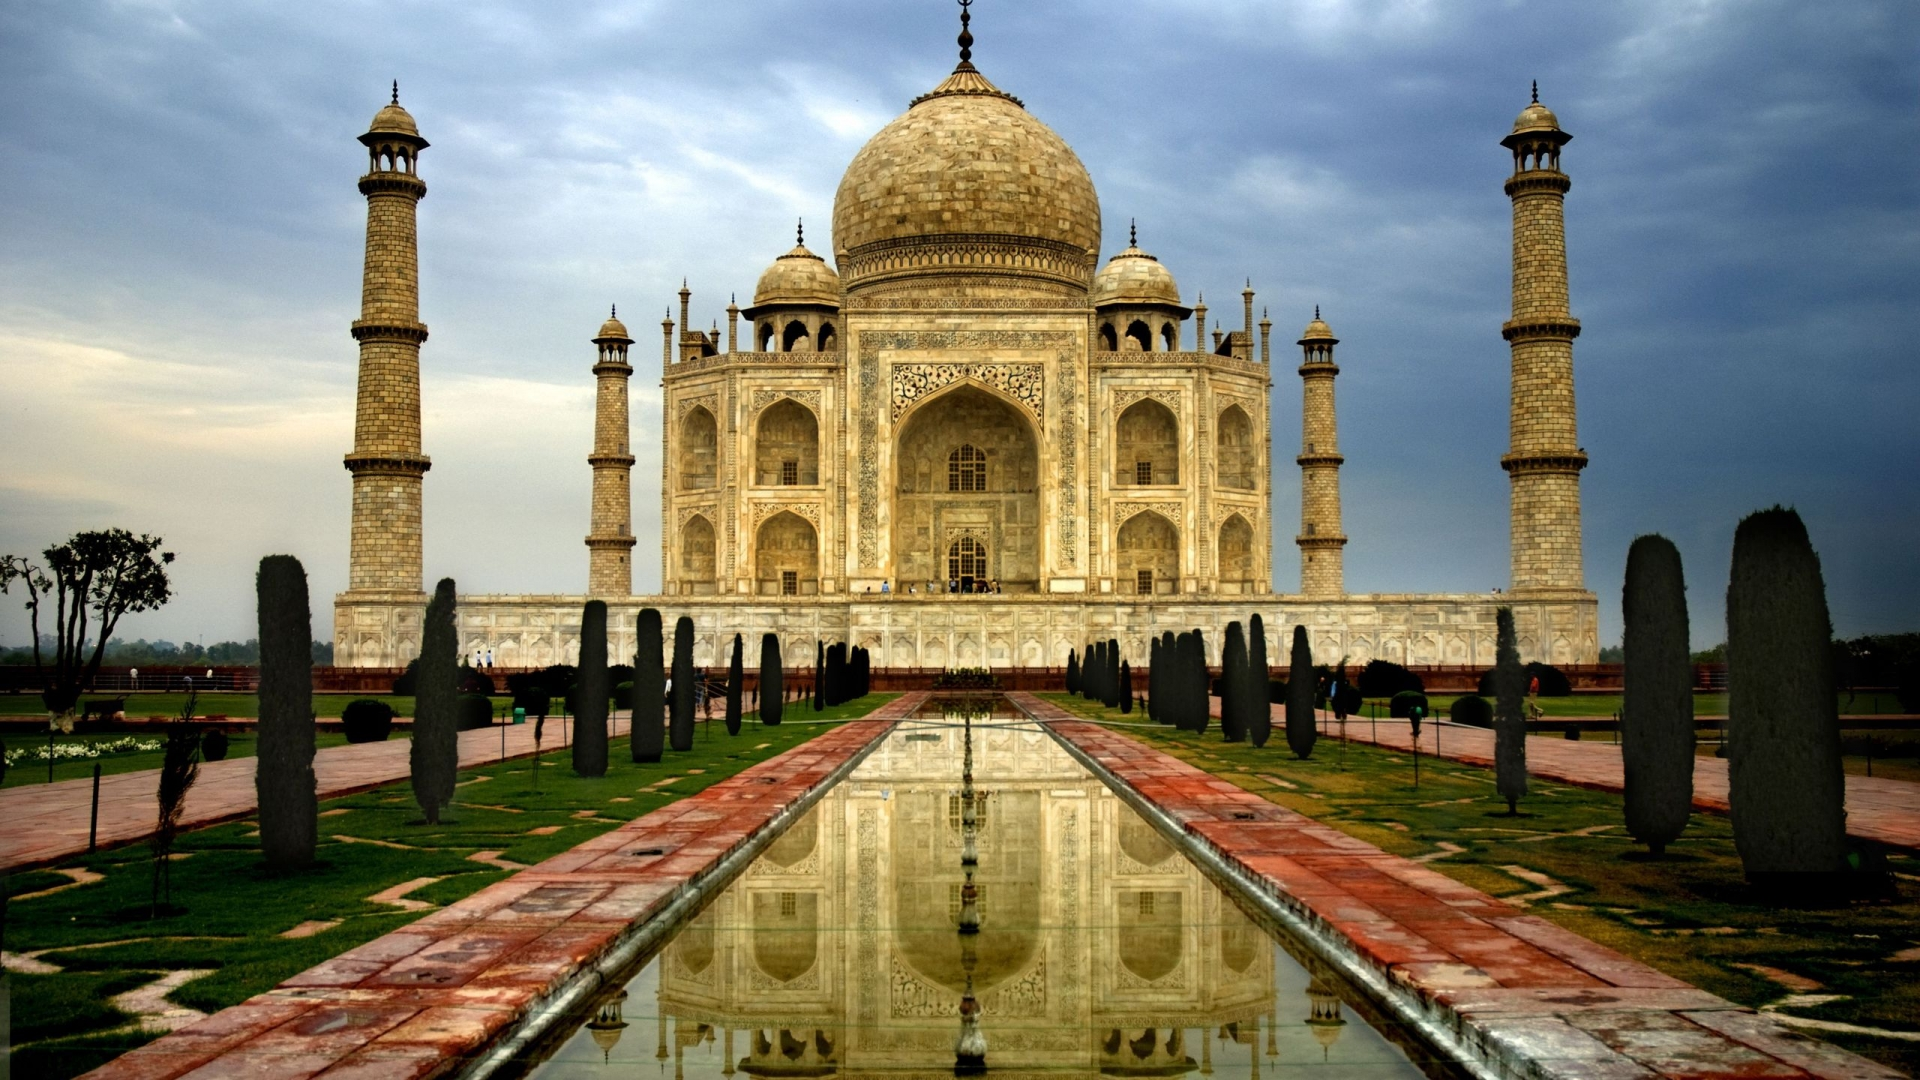 Taj Mahal India 375.76 Kb